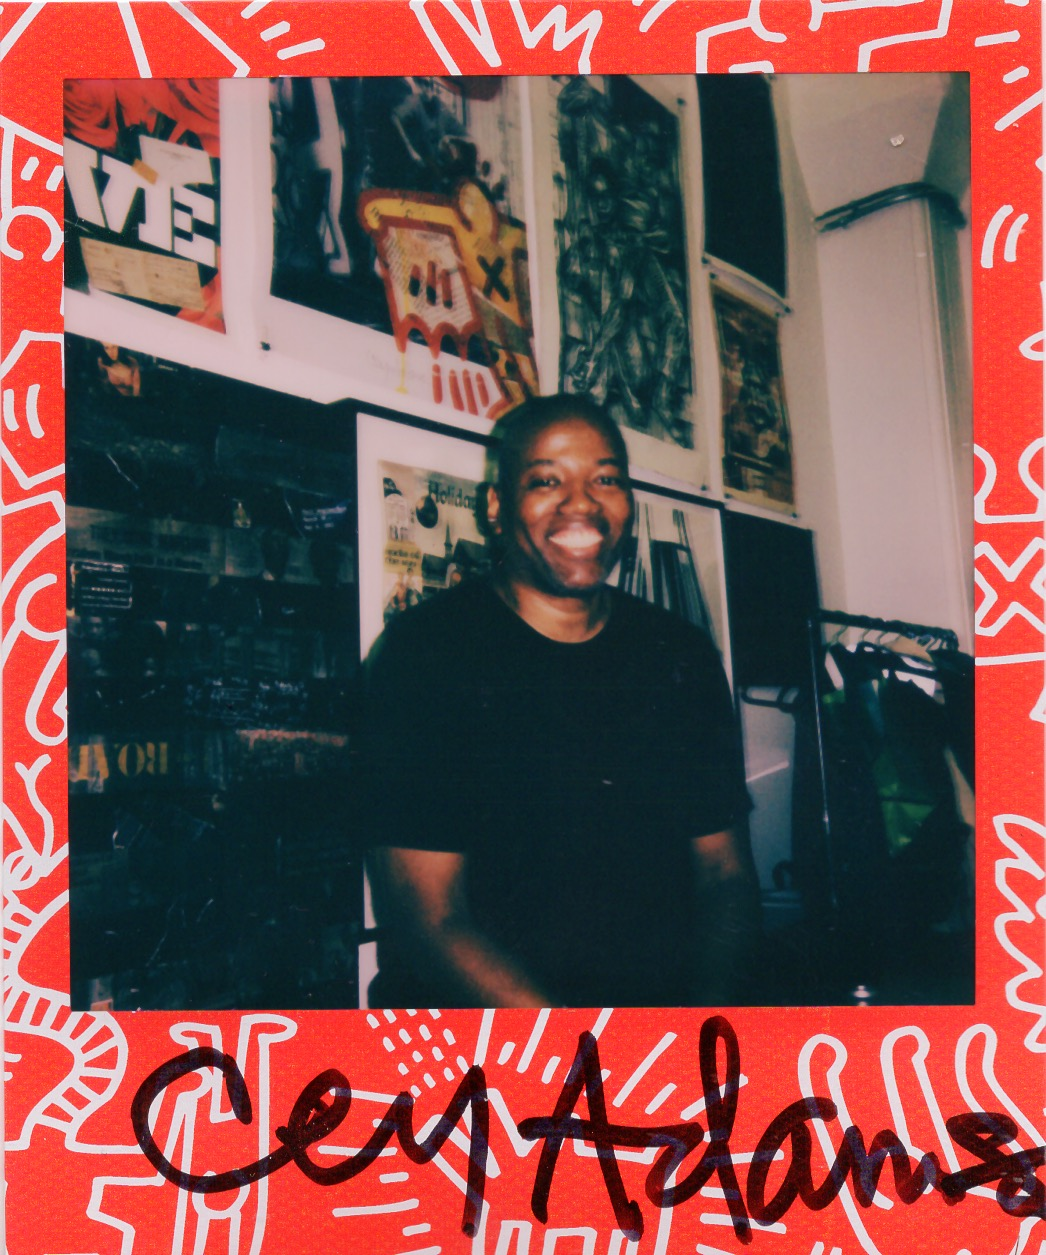 Keith Haring x Polaroid : Cey Adams: the US artist and downtown NYC legend who visualised 80s East Coast hip-hop